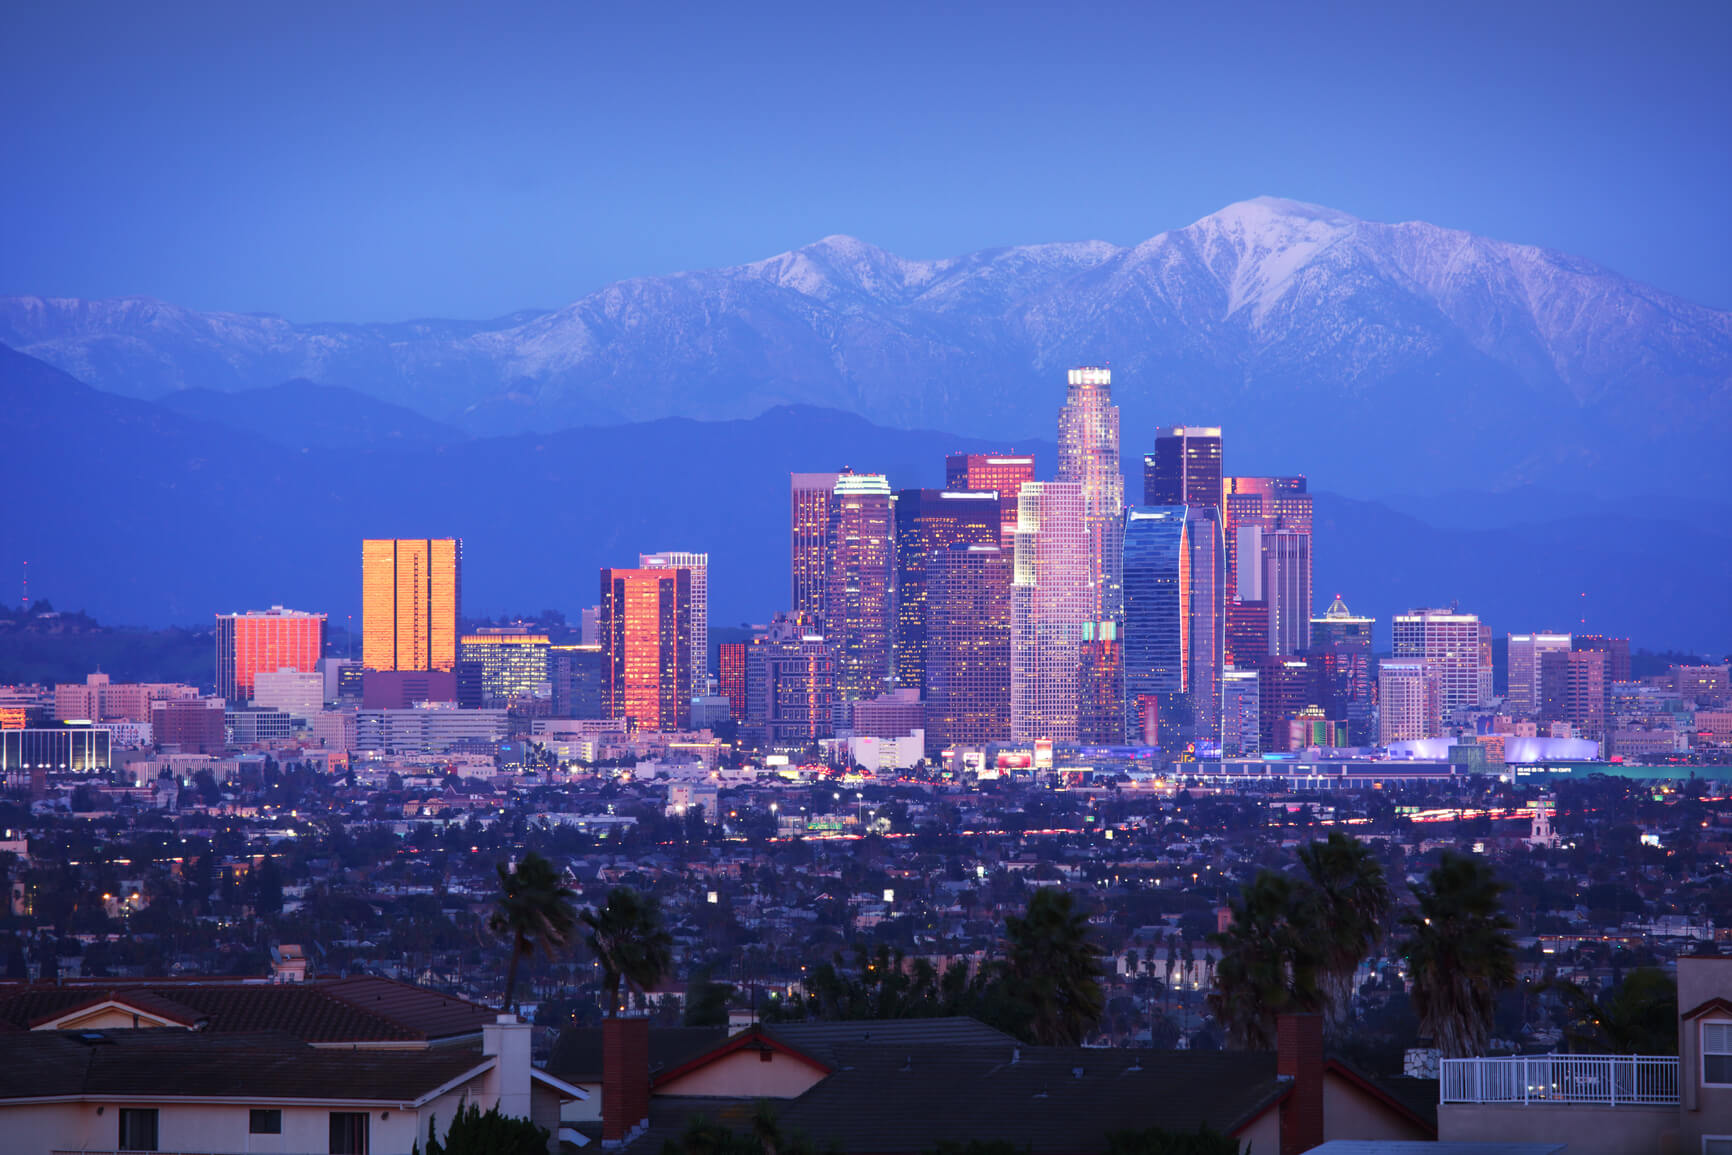 HOT!! SUMMER: Non-stop from Atlanta to Los Angeles (& vice versa) for only $74 roundtrip (Aug-Nov dates)